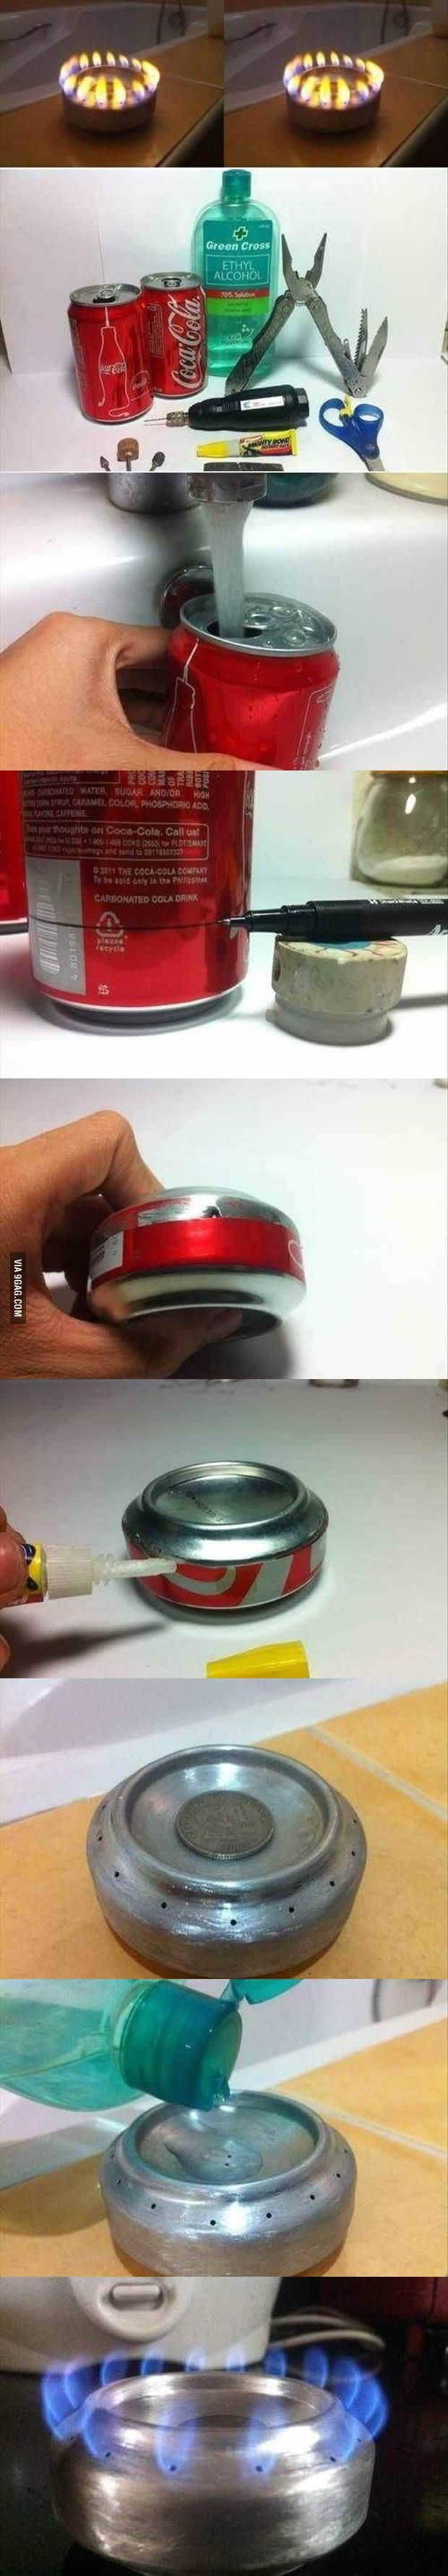 Does this work? Is it safe? http://9gag.com/gag/aEzgWjN?ref=mobile